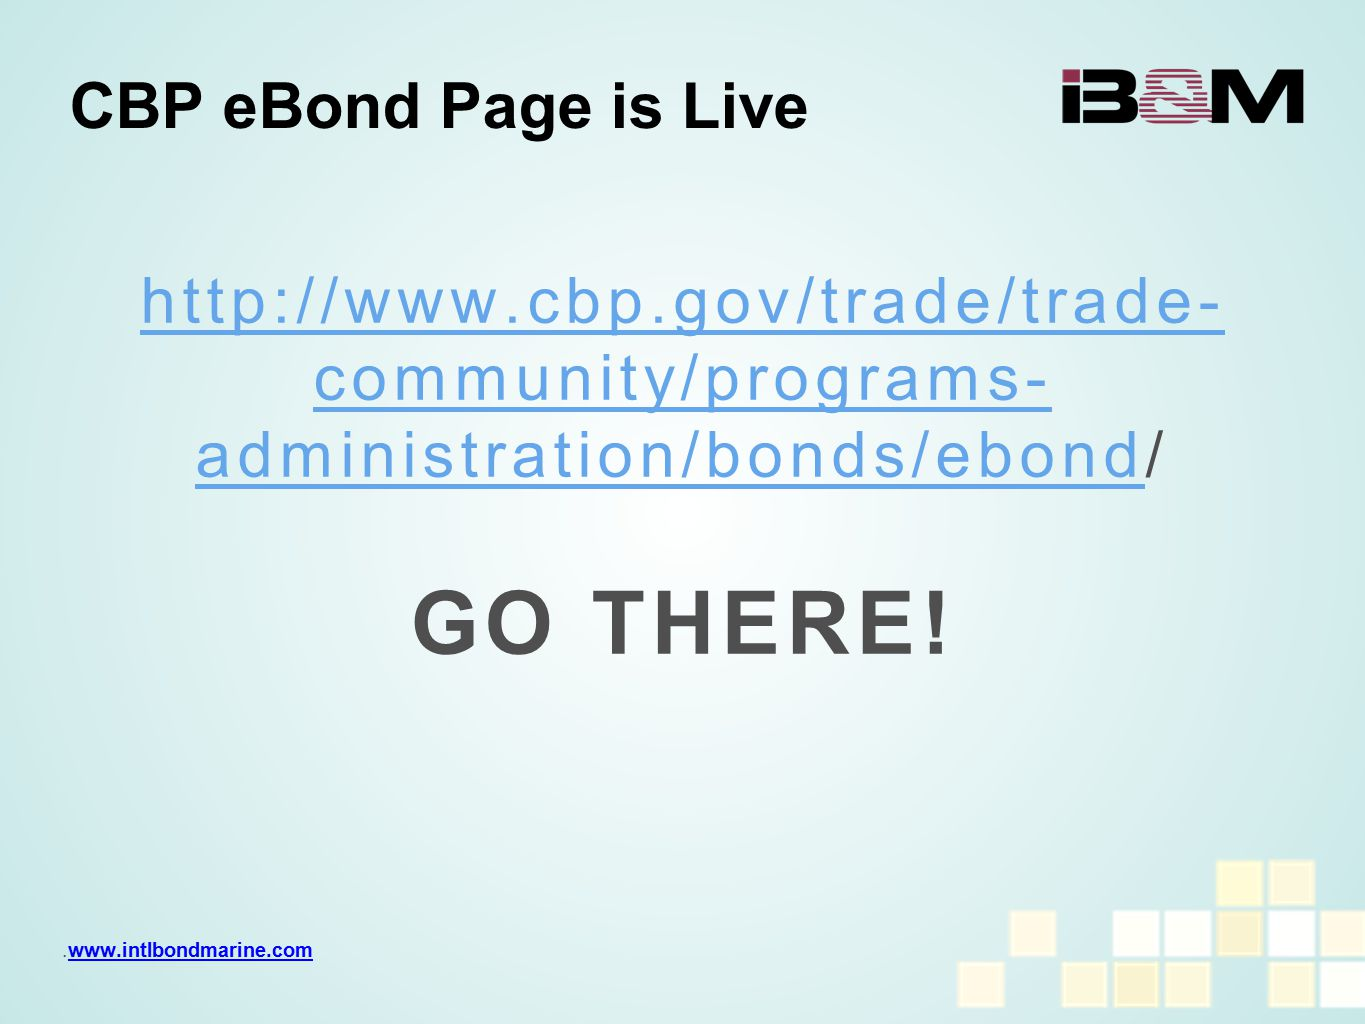 http://www.cbp.gov/trade/trade- community/programs- administration/bonds/ebond/ GO THERE! CBP eBond Page is Live.www.intlbondmarine.comwww.intlbondmar